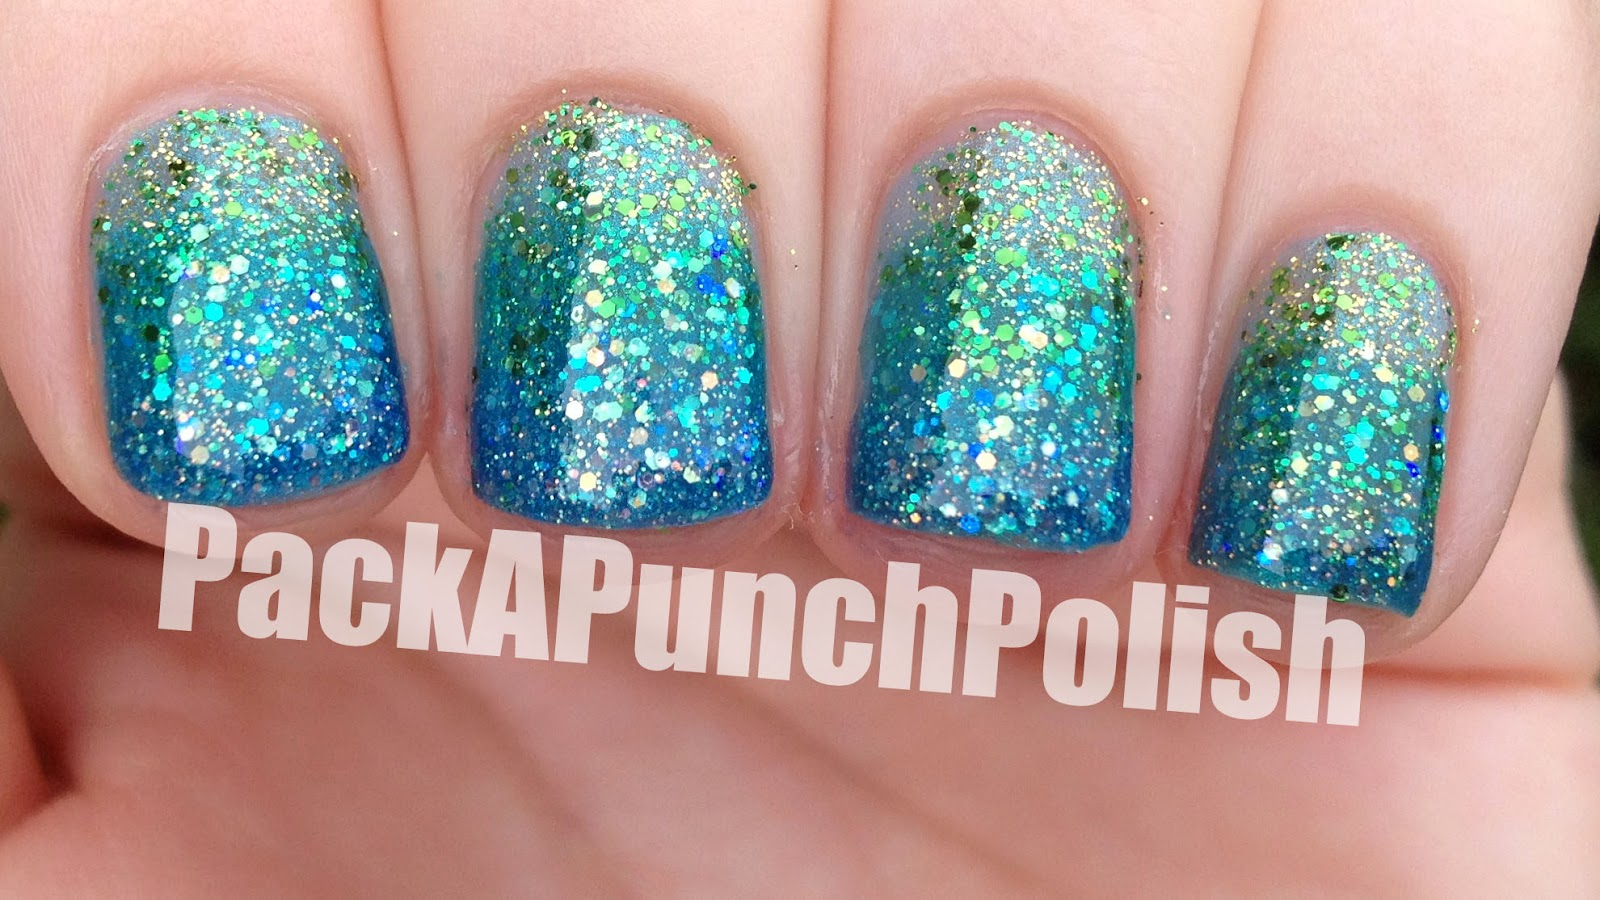 Packapunchpolish glitter gradient nails glitter gradient nails prinsesfo Choice Image